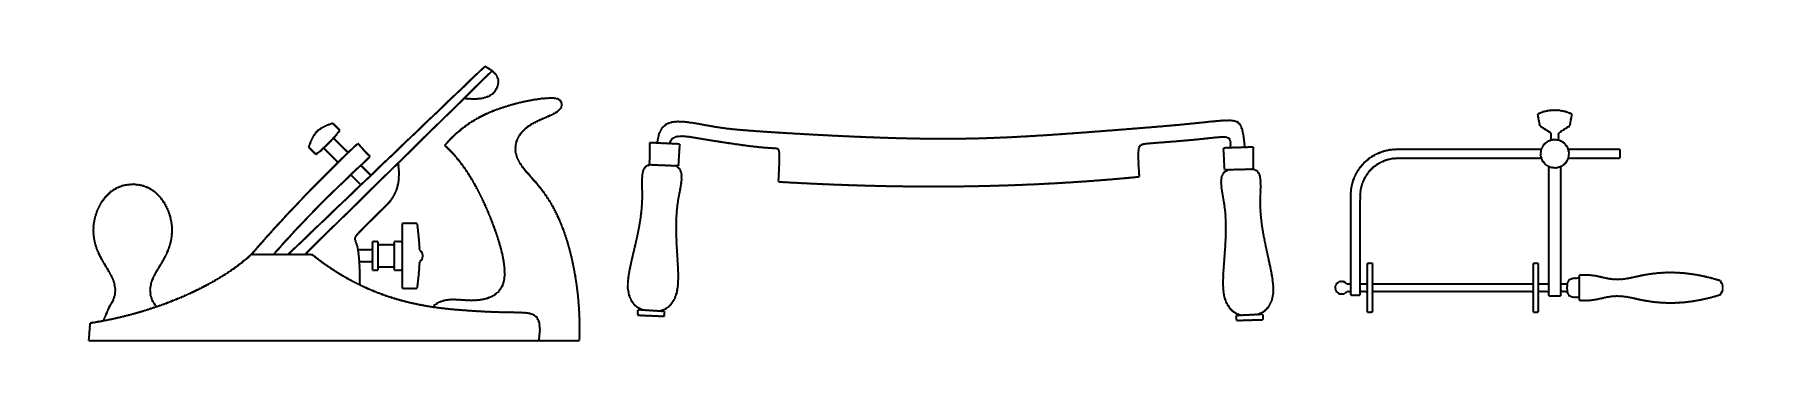 plane drawknife saw white.png